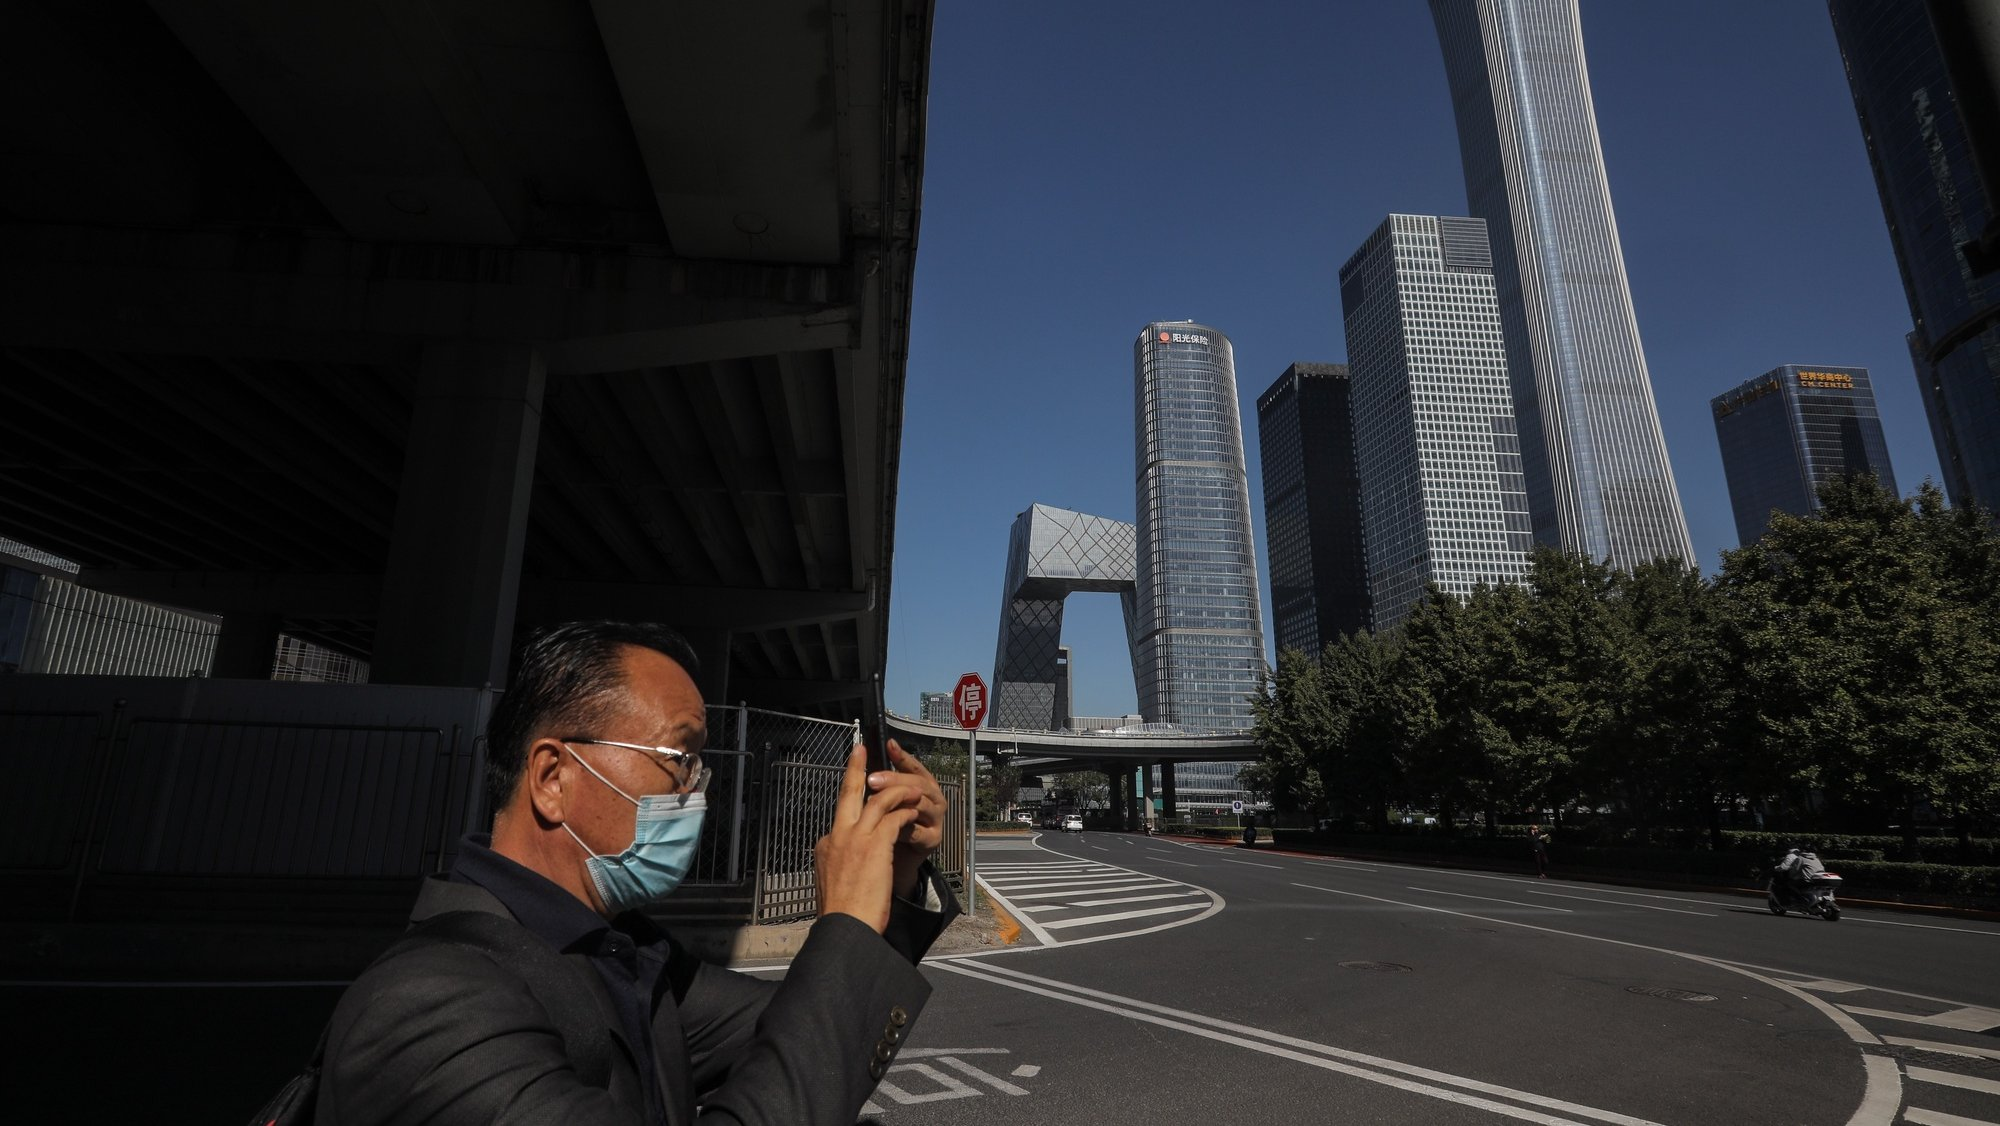 epa09529478 A man uses his mobile phone to take photos in the central business district (CBD) in Beijing, China, 17 October 2021 (issued 18 October 2021). China's gross domestic product (GDP) rose 4.9 percent year on year in the third quarter of 2021, according to data from the National Bureau of Statistics (NBS) issued on 18 October 2021.  EPA/WU HONG